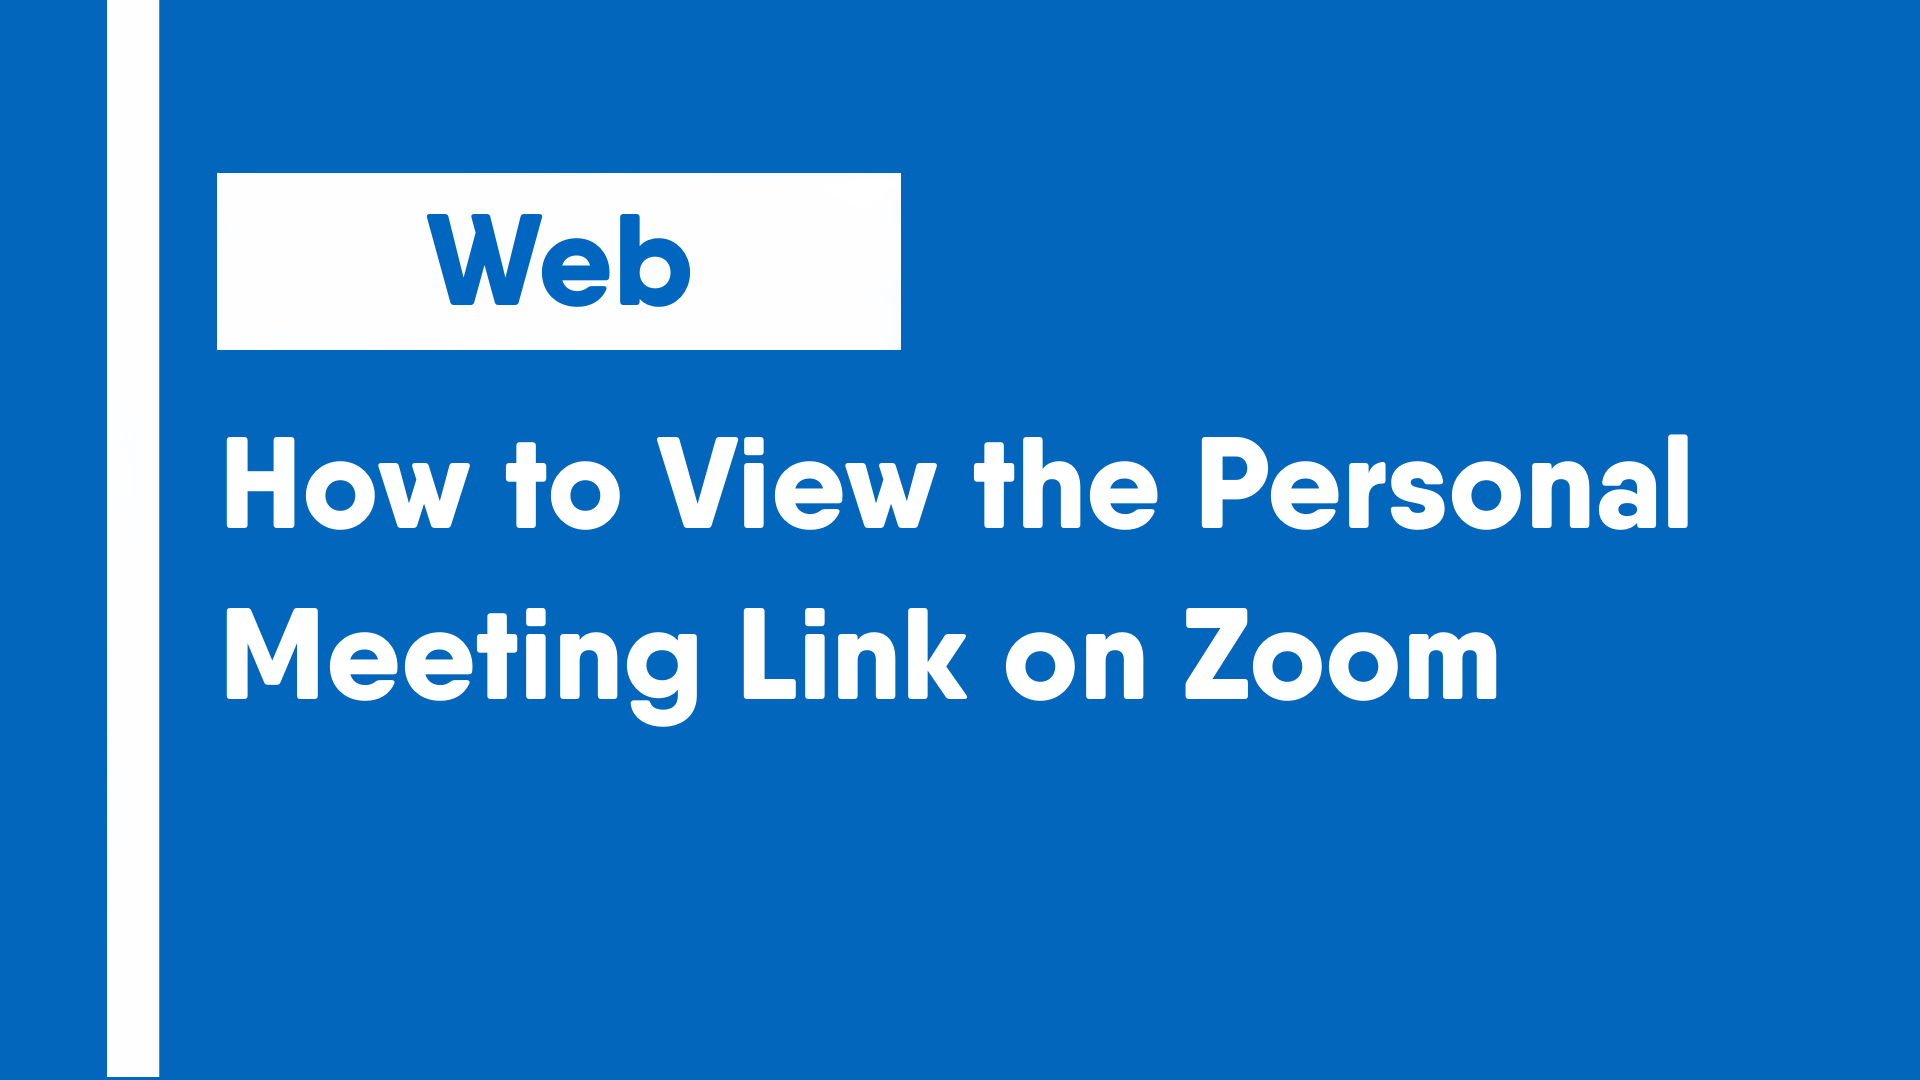 How to View the Personal Meeting Link on Zoom